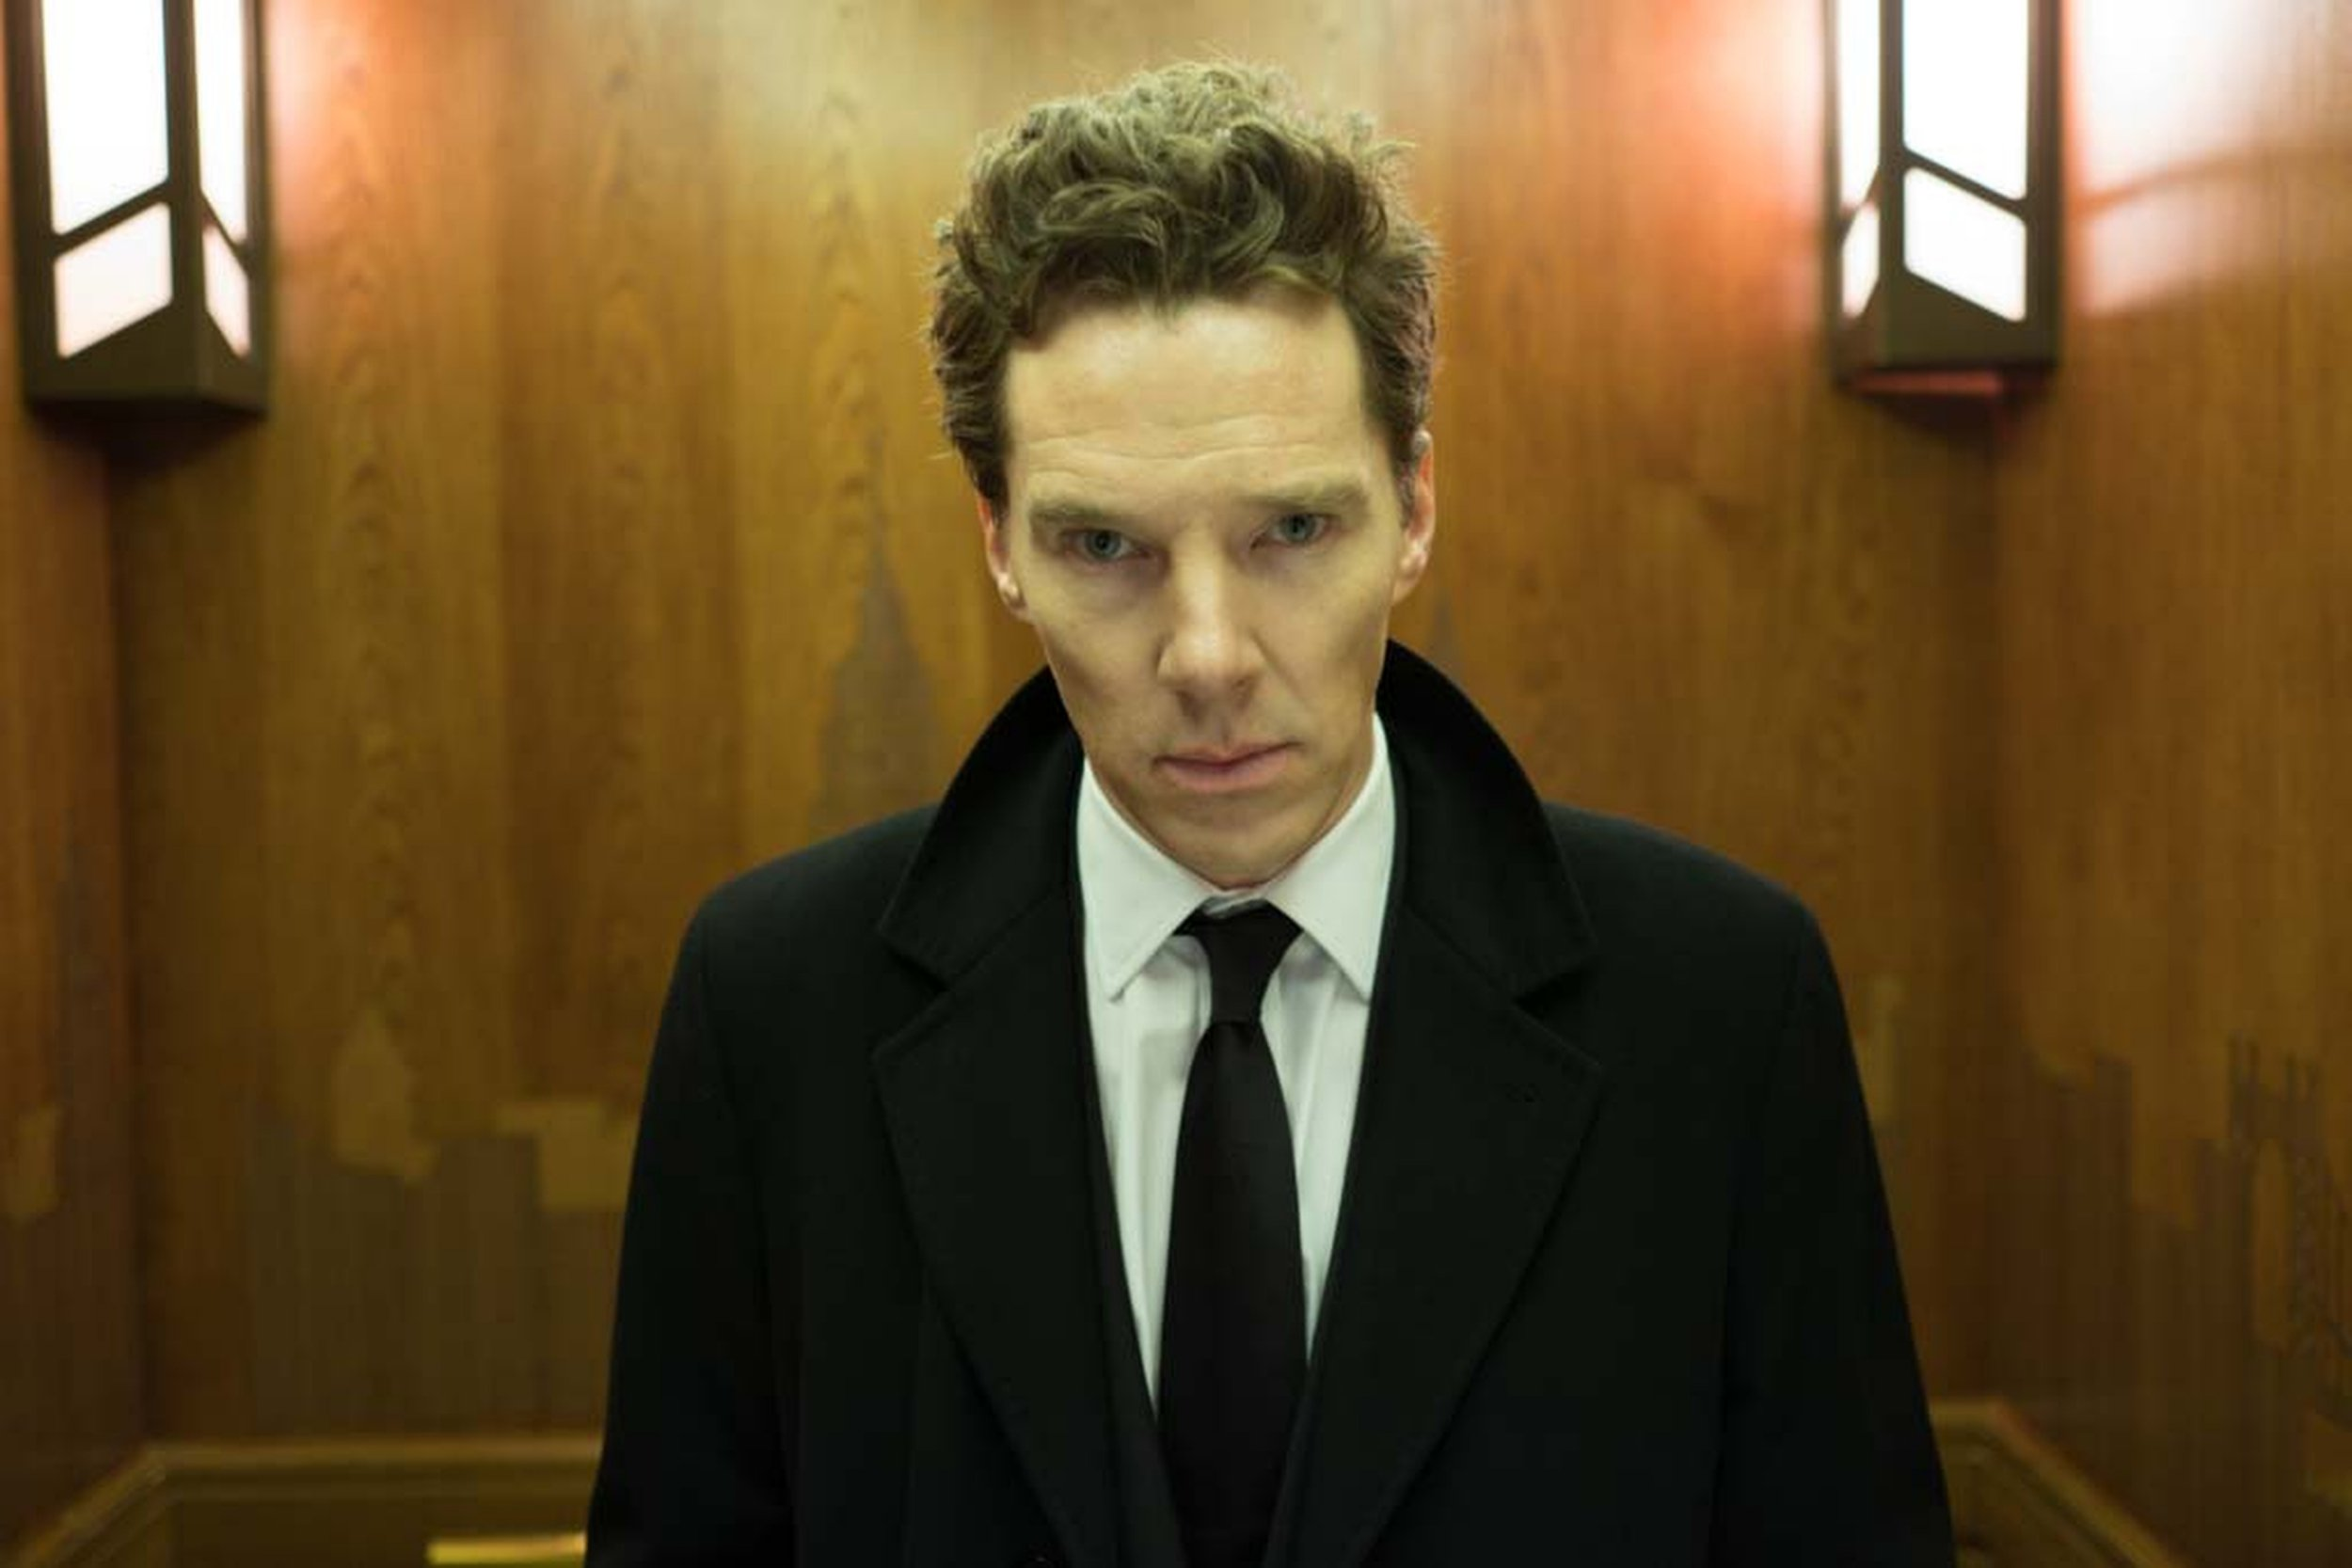 Benedict Cumberbatch stars in Sky original production Patrick Melrose, a new five-part drama based on the much-loved novels by Edward St Aubyn. Adapted by David Nicholls (One Day), each episode depicts a chapter in the life of the troubled Melrose, from his abusive childhood to his drug-addled adulthood. Hugo Weaving and Jennifer Jason Leigh also feature among an outstanding ensemble cast in a tale that???s sometimes dark but always bejewelled with a sparkling wit.